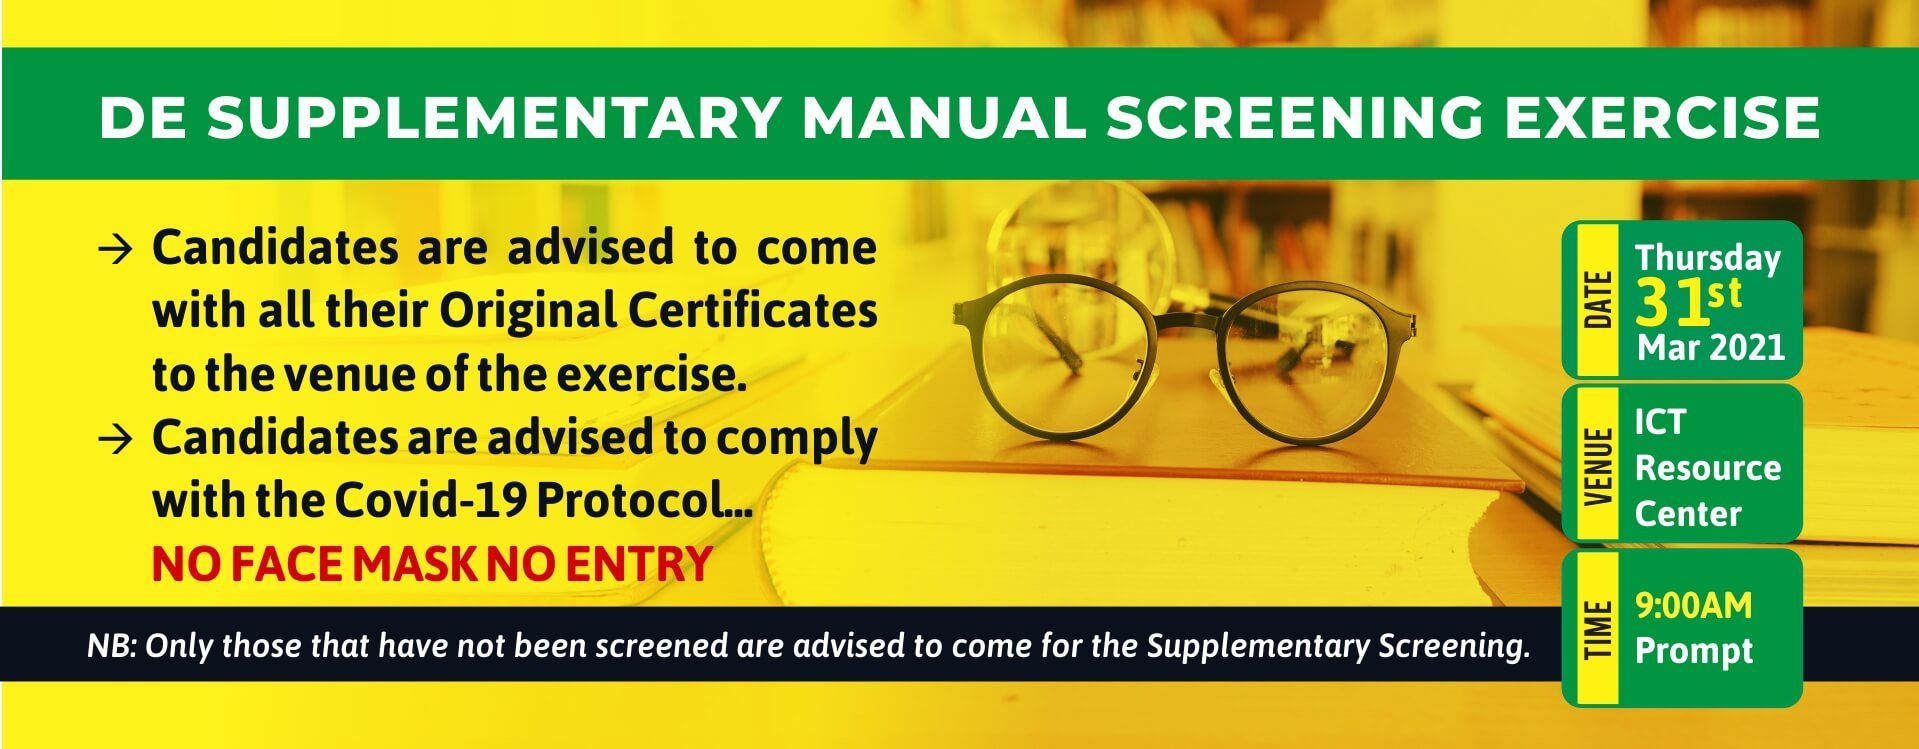 MOUAU Supplementary Direct Entry Manual Screening Exercise Schedule